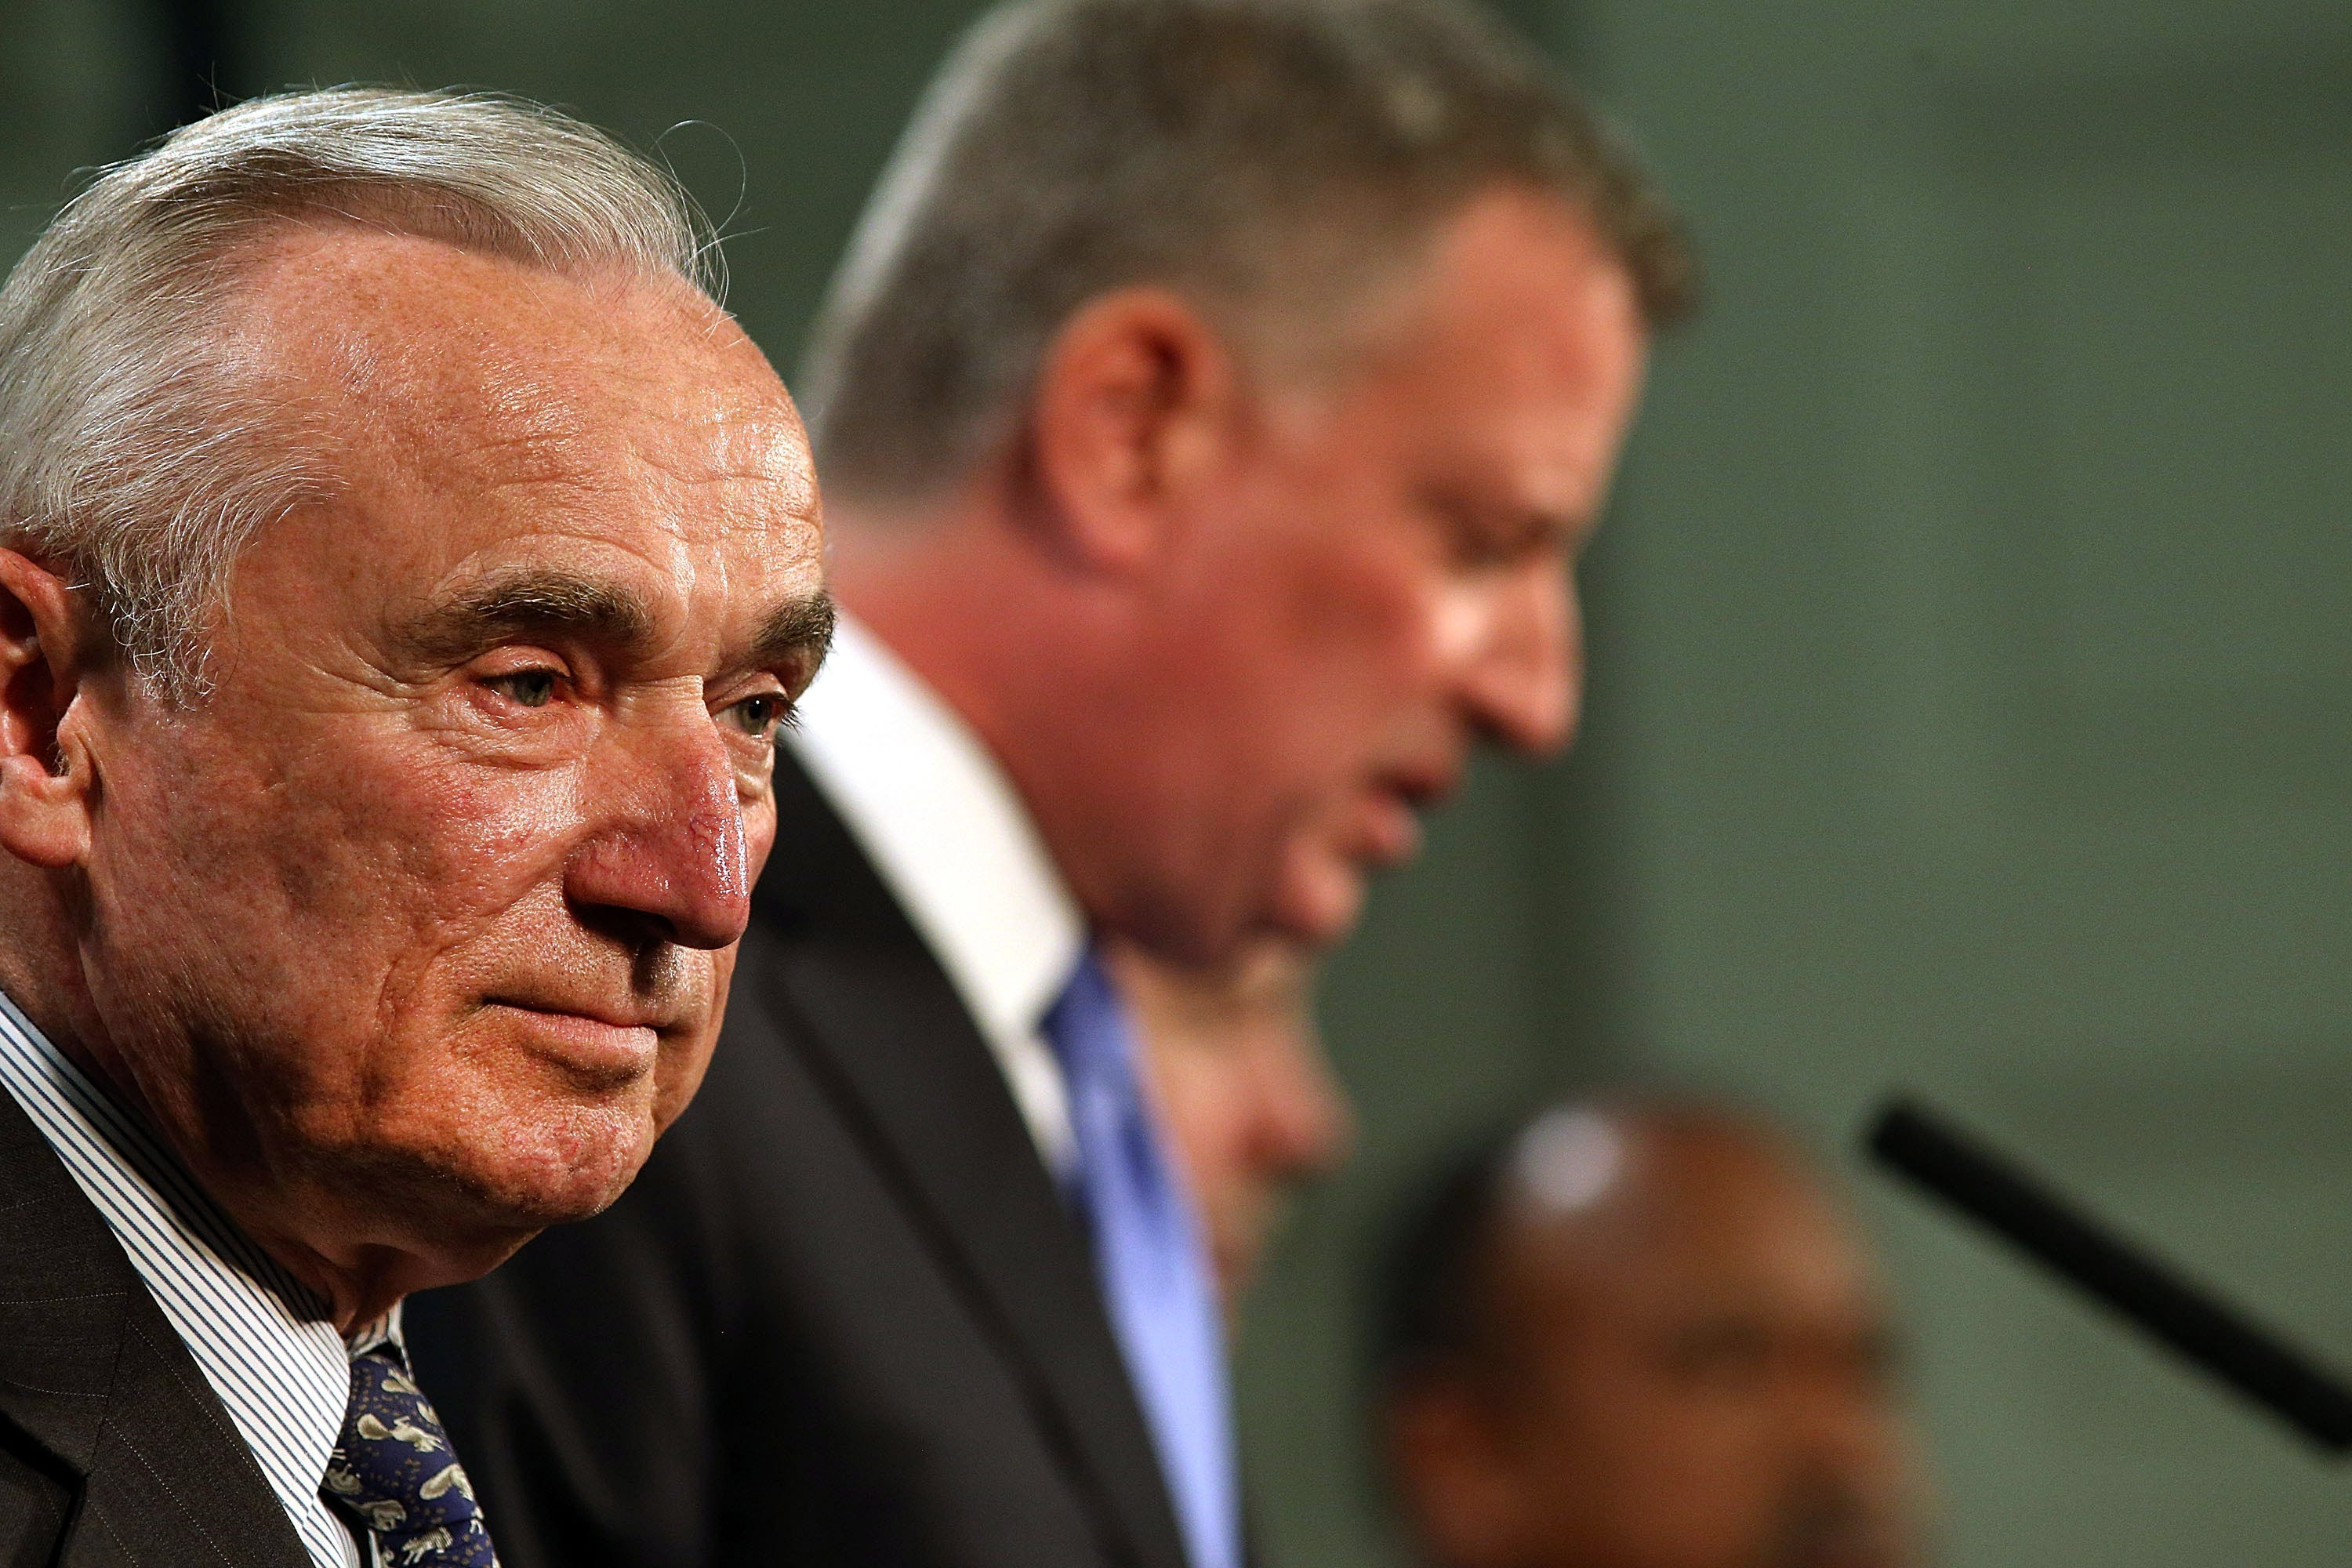 New York Mayor Bill de Blasio, right, and New York Police Commissioner William Bratton speak to the media at a news conference to address the recent death of a man in police custody on July 18 in New York City.